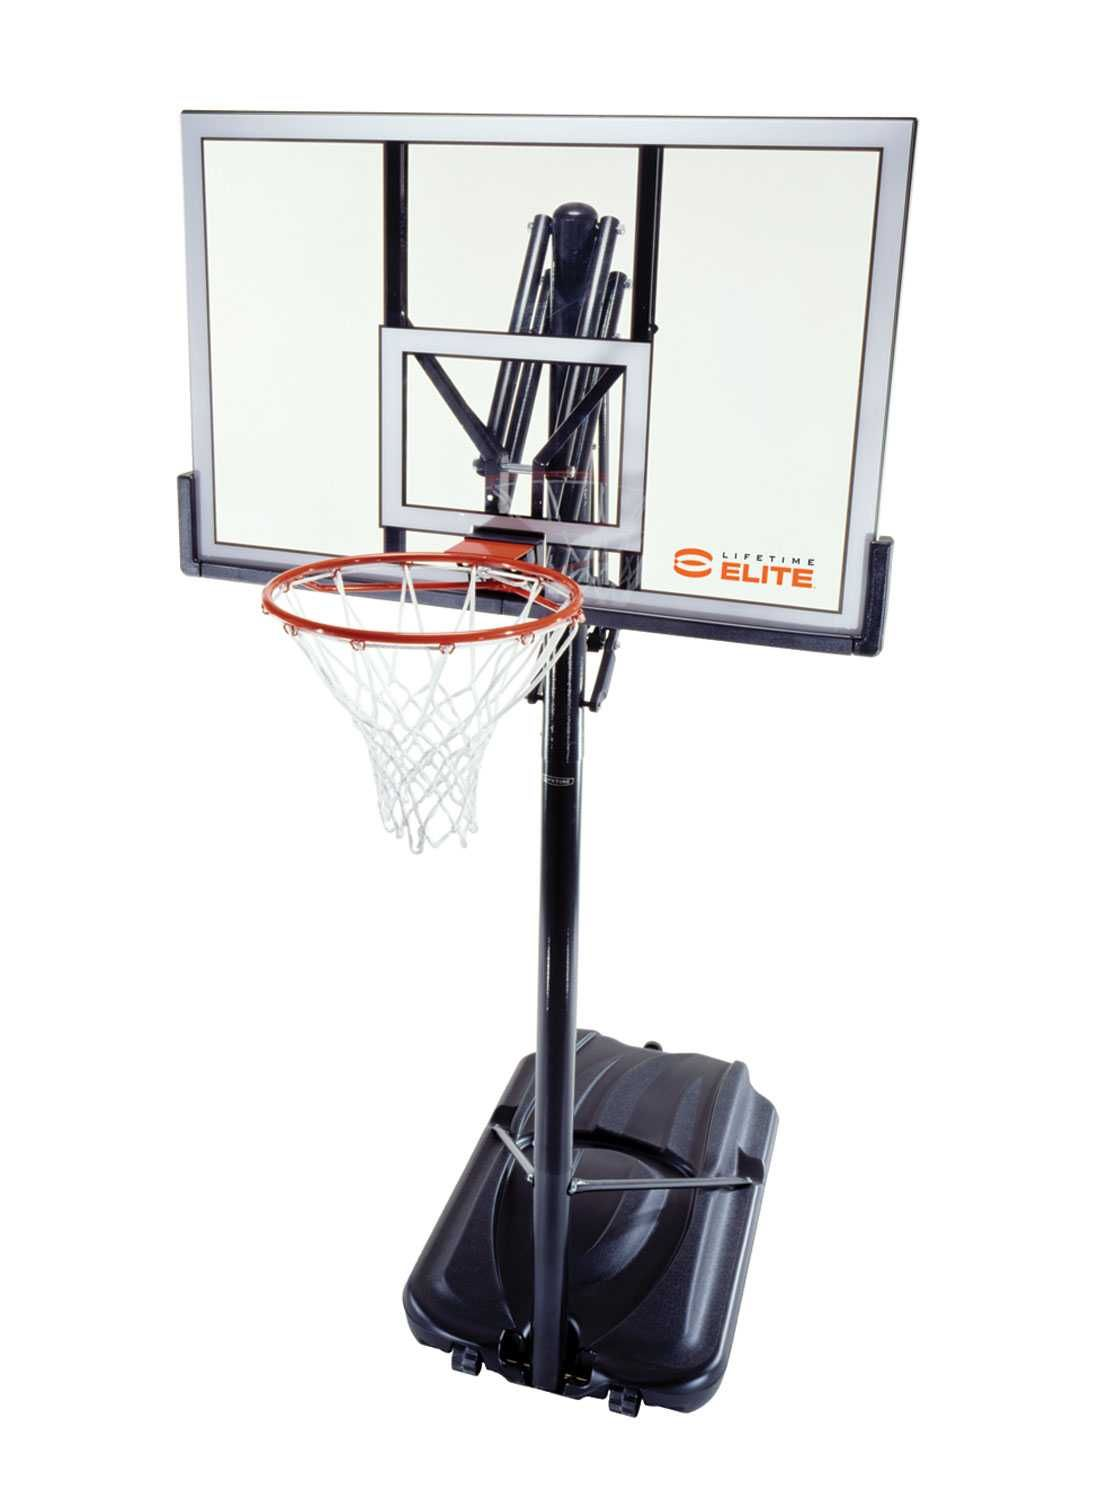 71284 Lifetime Portable Basketball System Elite Features A Clear 52 X 33 X 1 Steel Framed Shatter Proof Backboard Basketball Systems Cover Gray Shatter